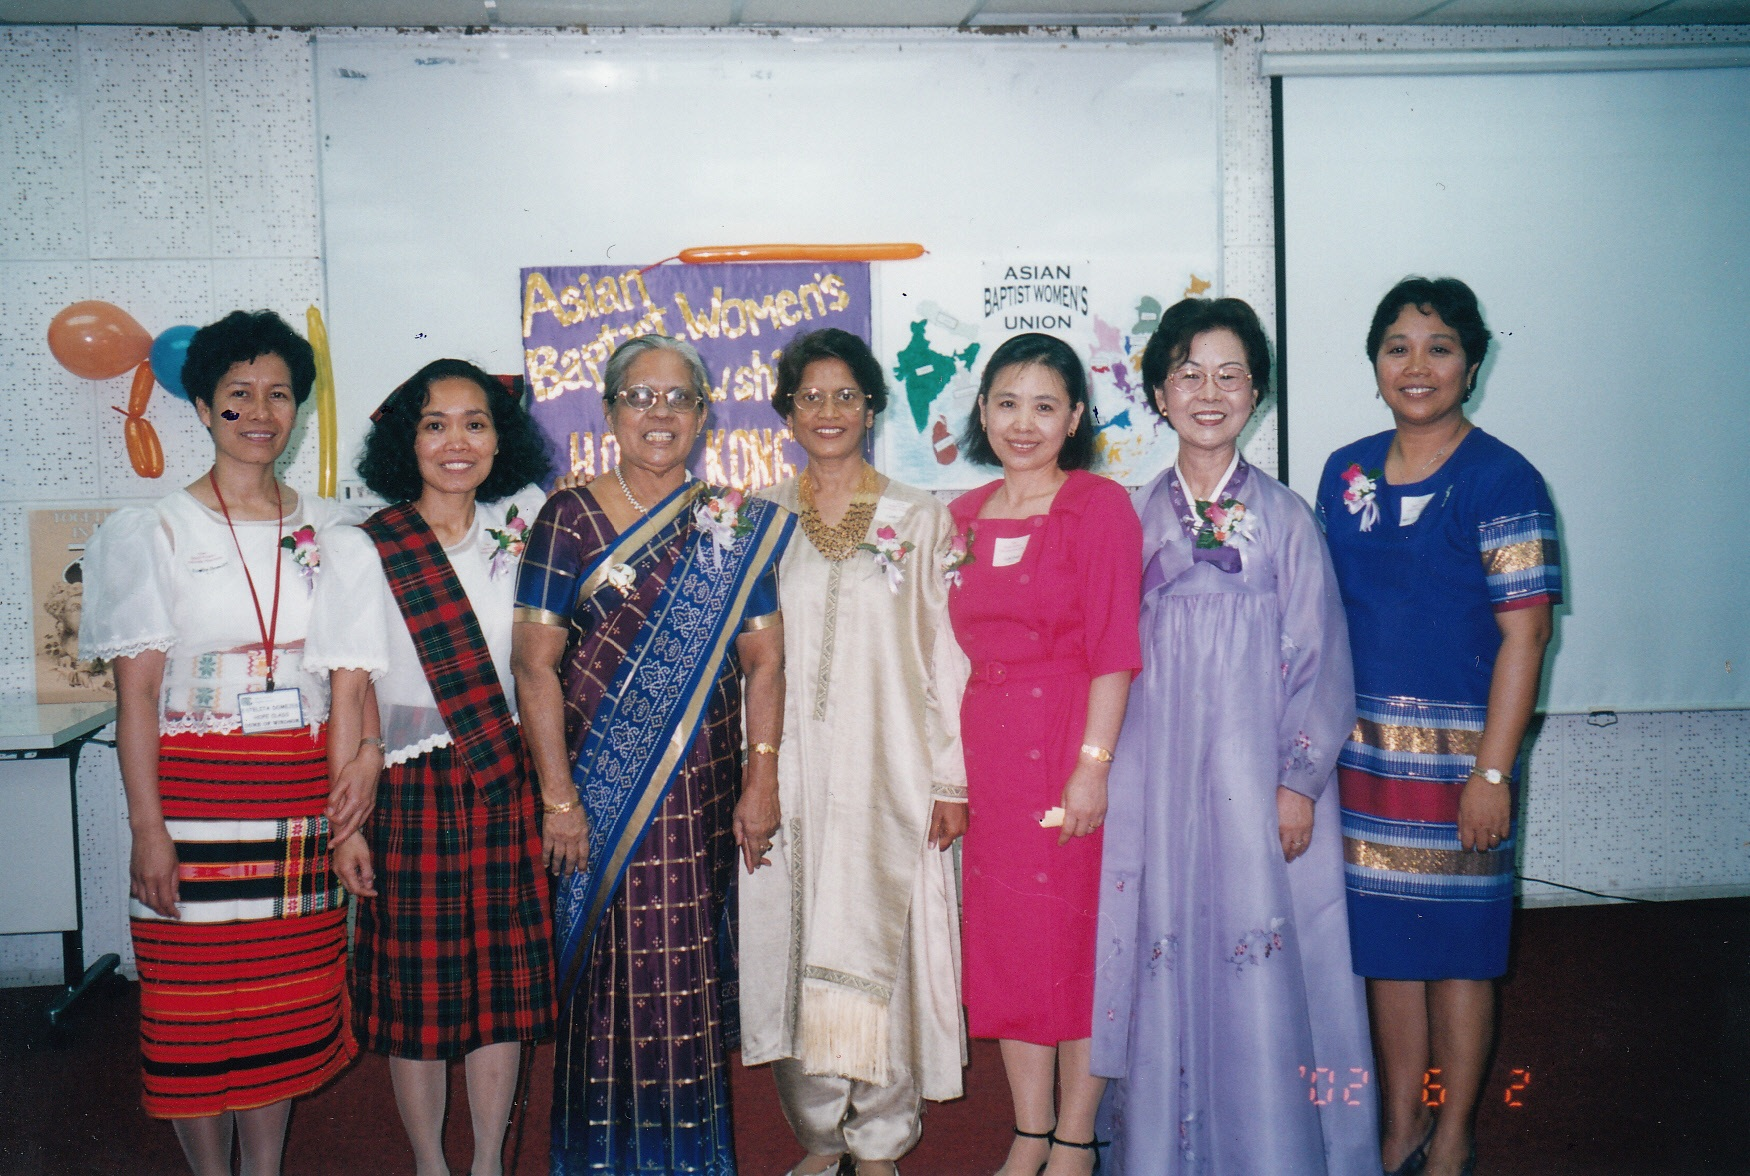 ASIAN BAPTIST WOMEN'S FELLOWSHIP, HK